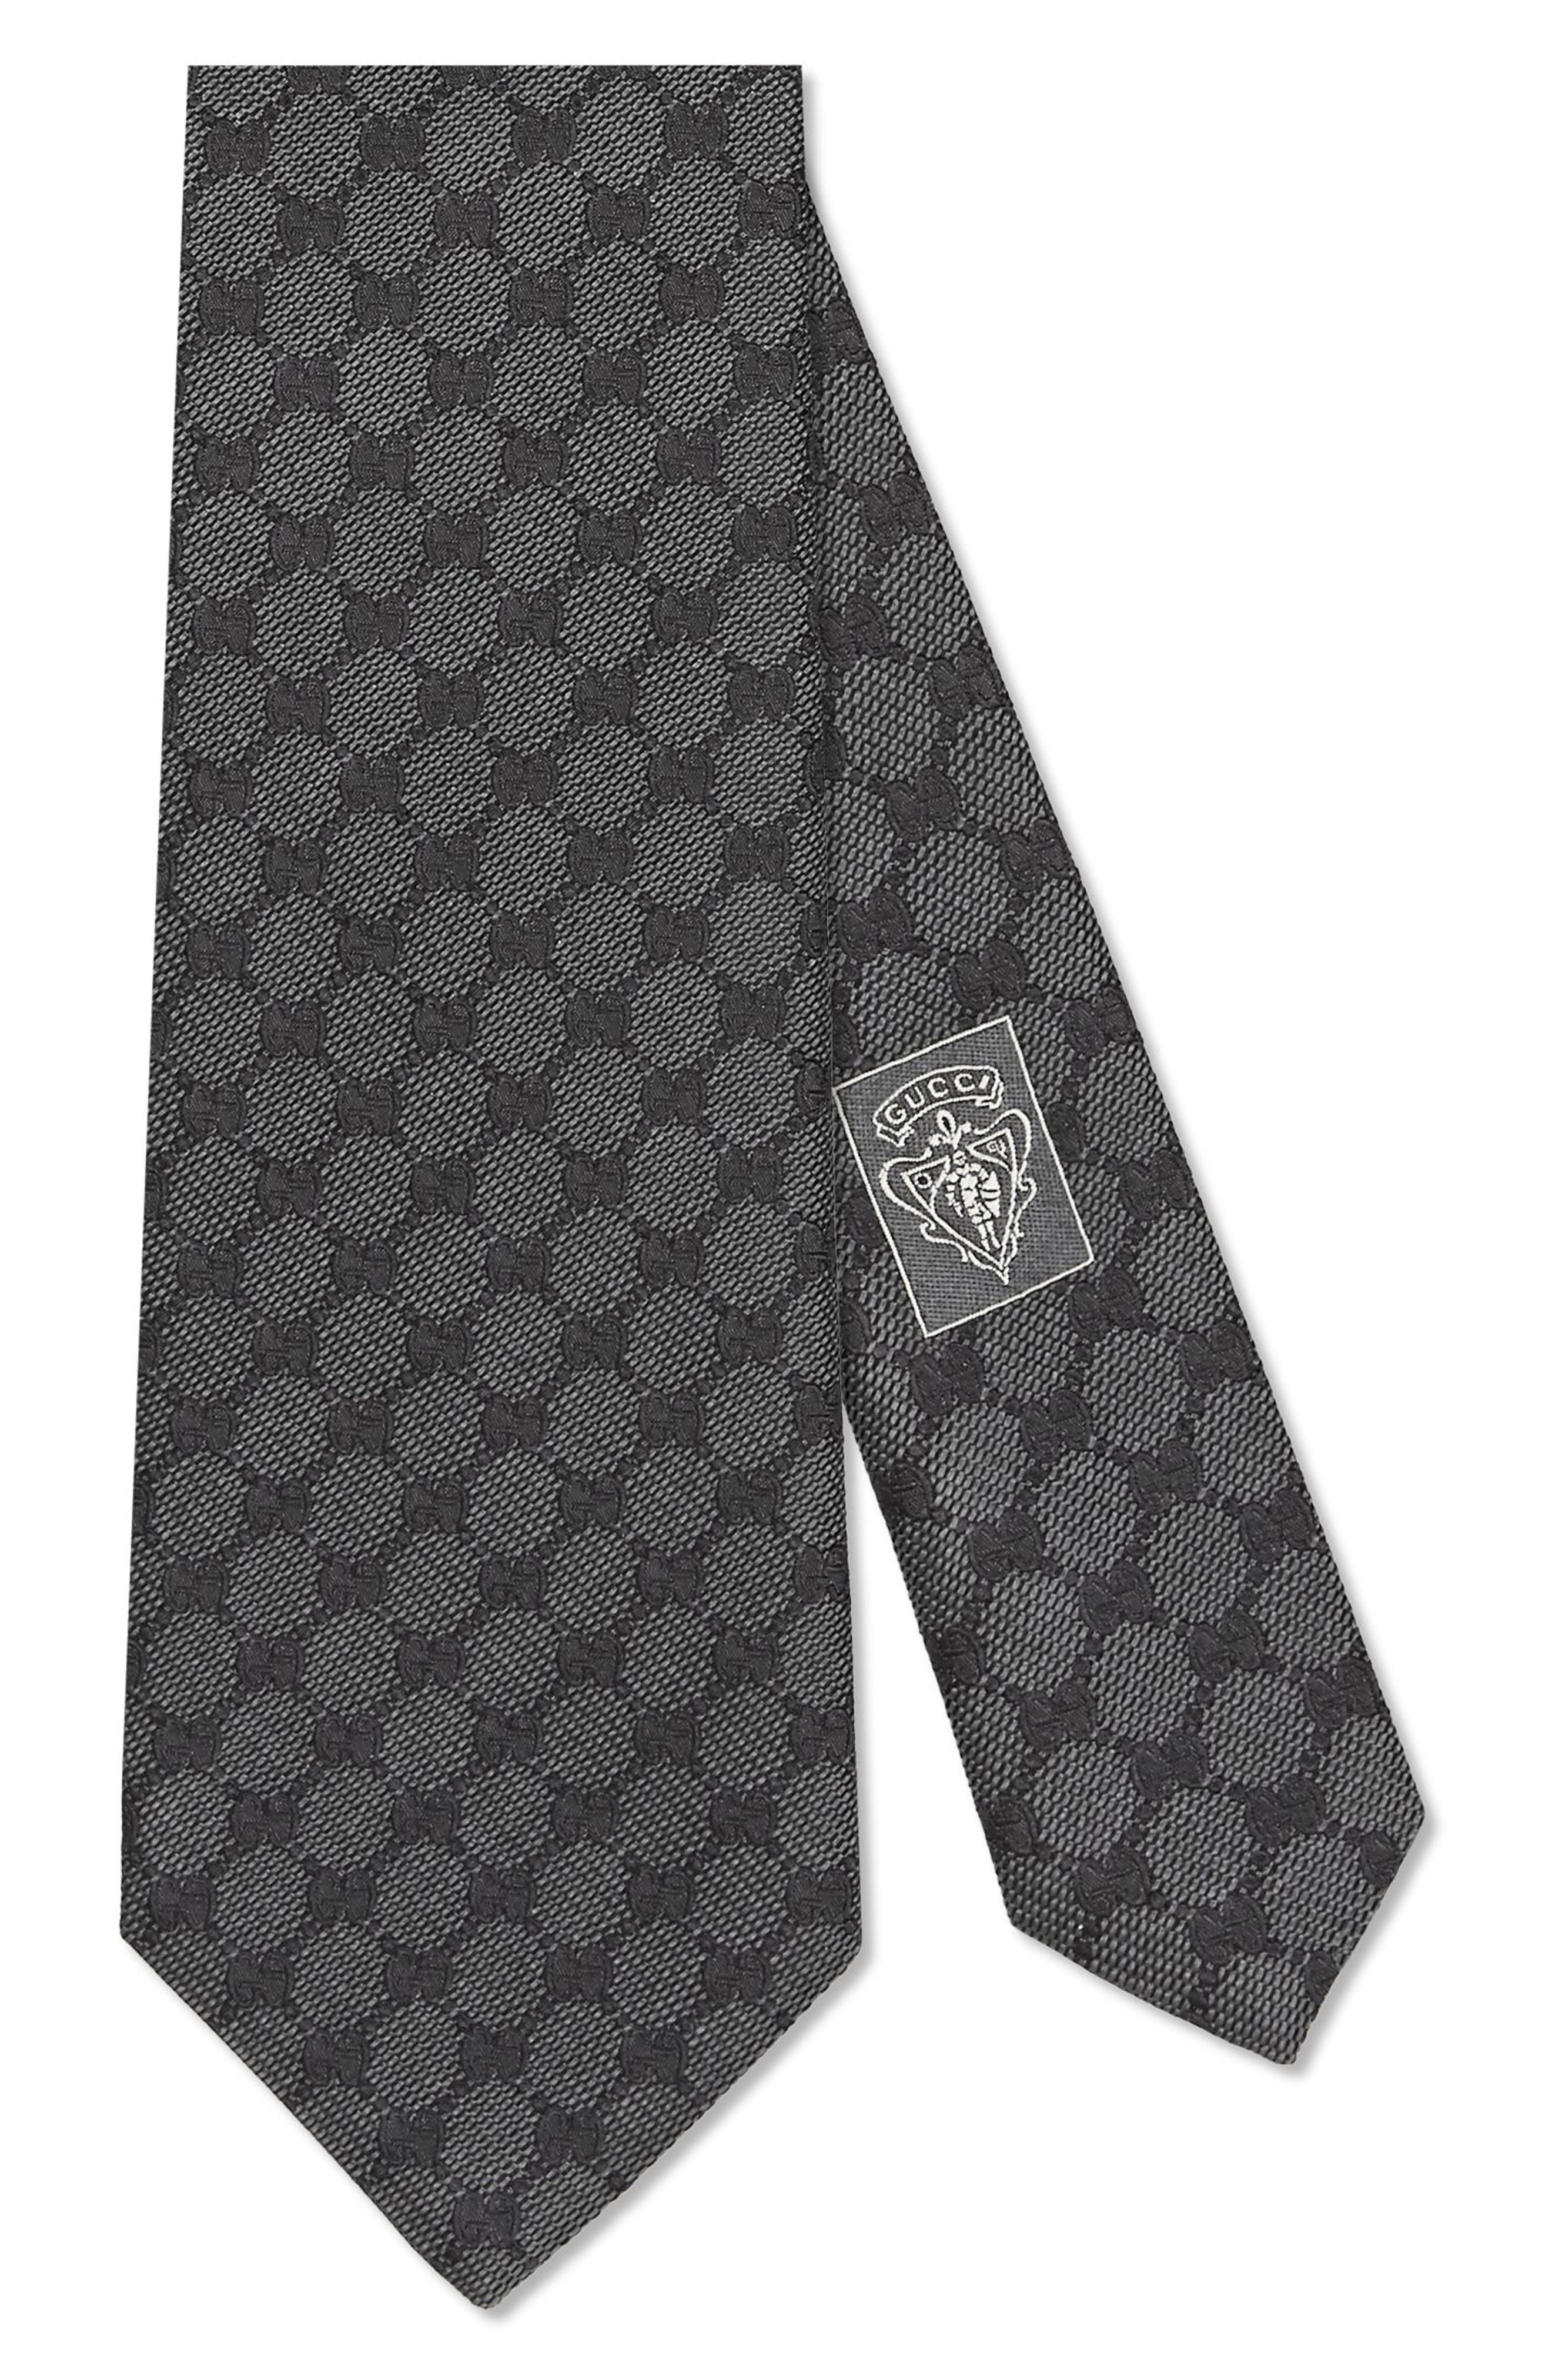 Arend Print Silk Tie,                             Main thumbnail 1, color,                             022